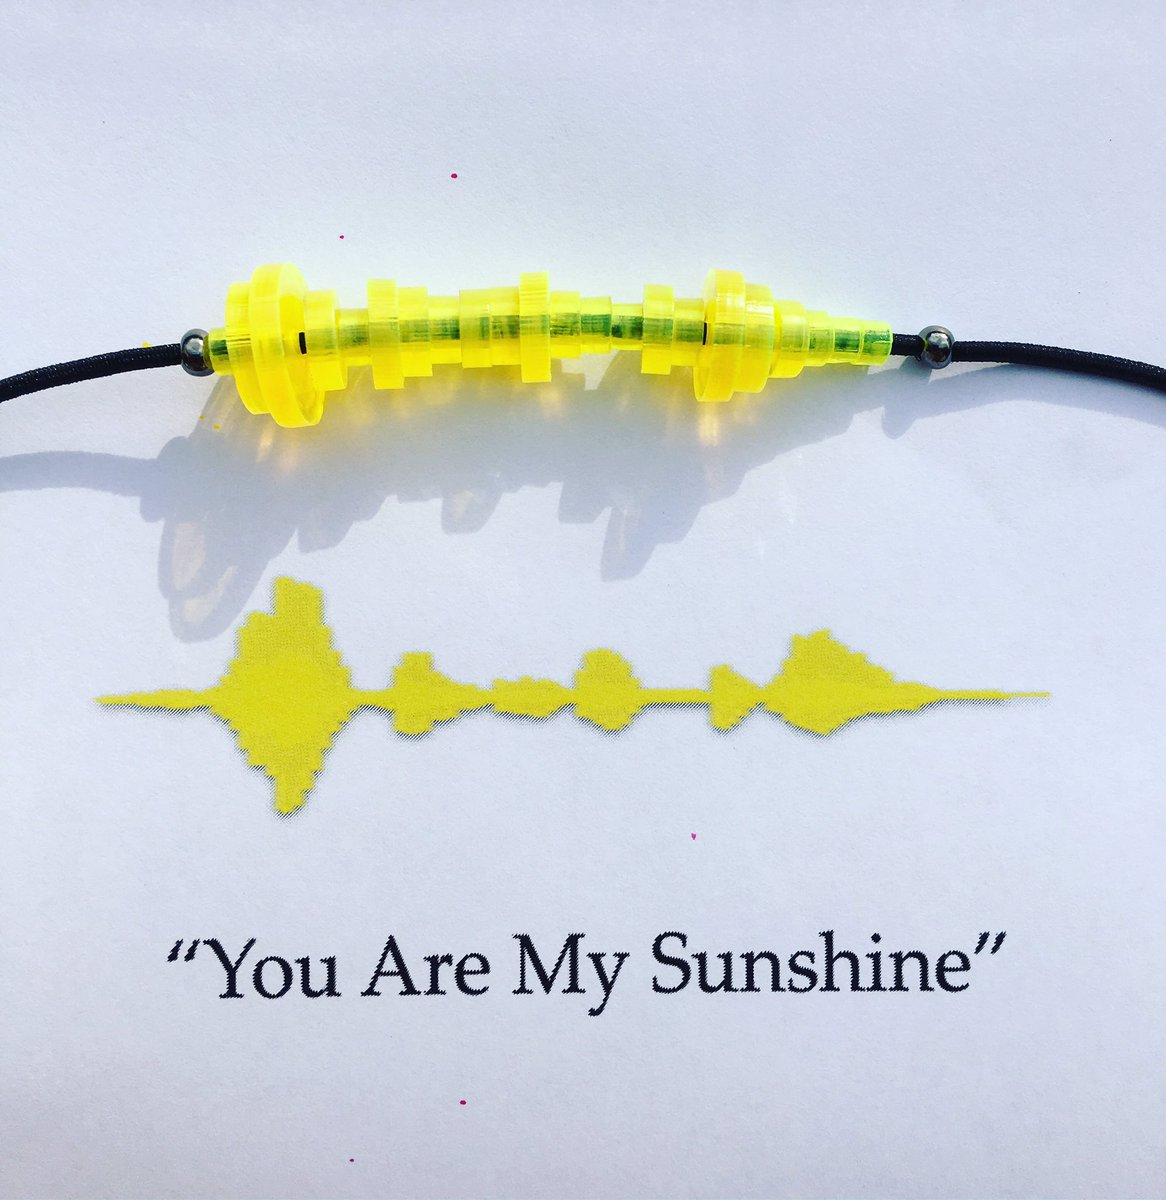 Sound Wave Bracelets On Twitter Brighten Up Someone S Day With Our Jewelry Https T Co Veltfdmza8